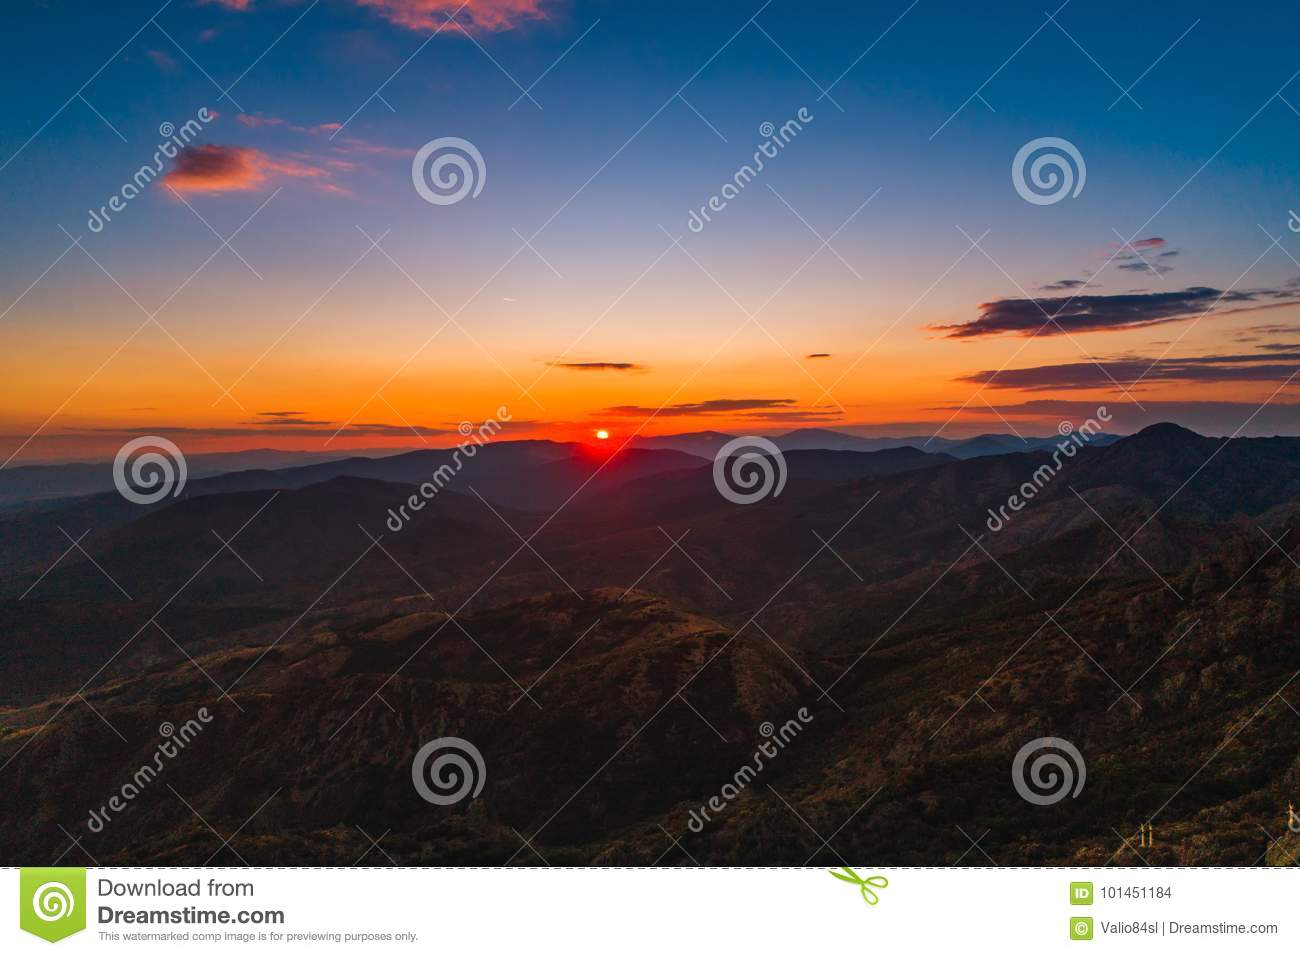 Sunset over mountain hills, aerial panoramic view